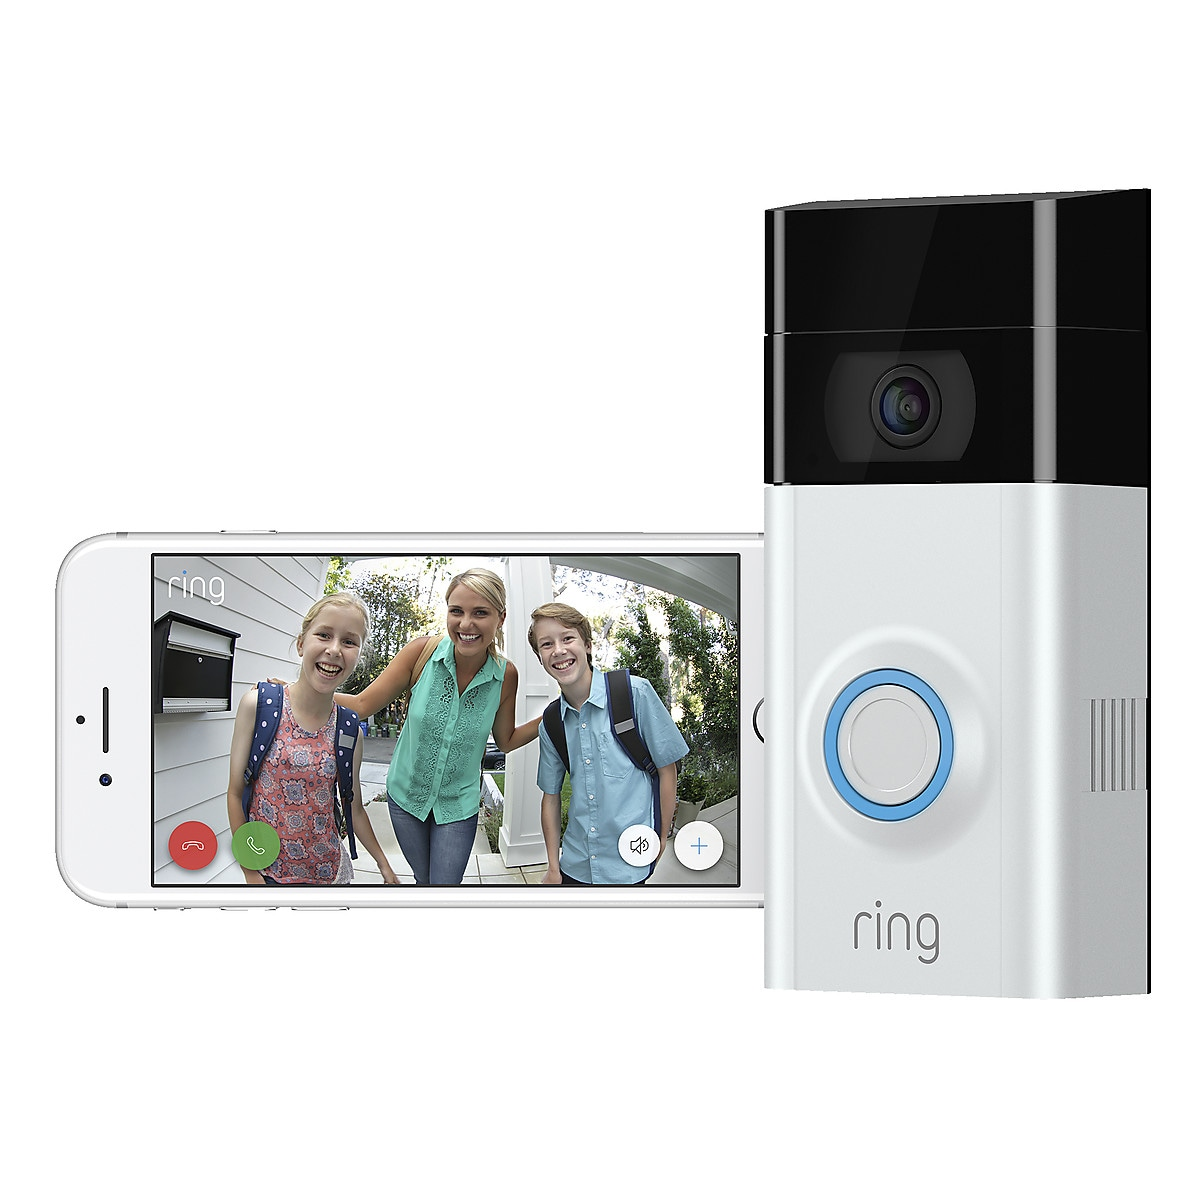 Ring Video Doorbell 2, dørklokke med kamera.